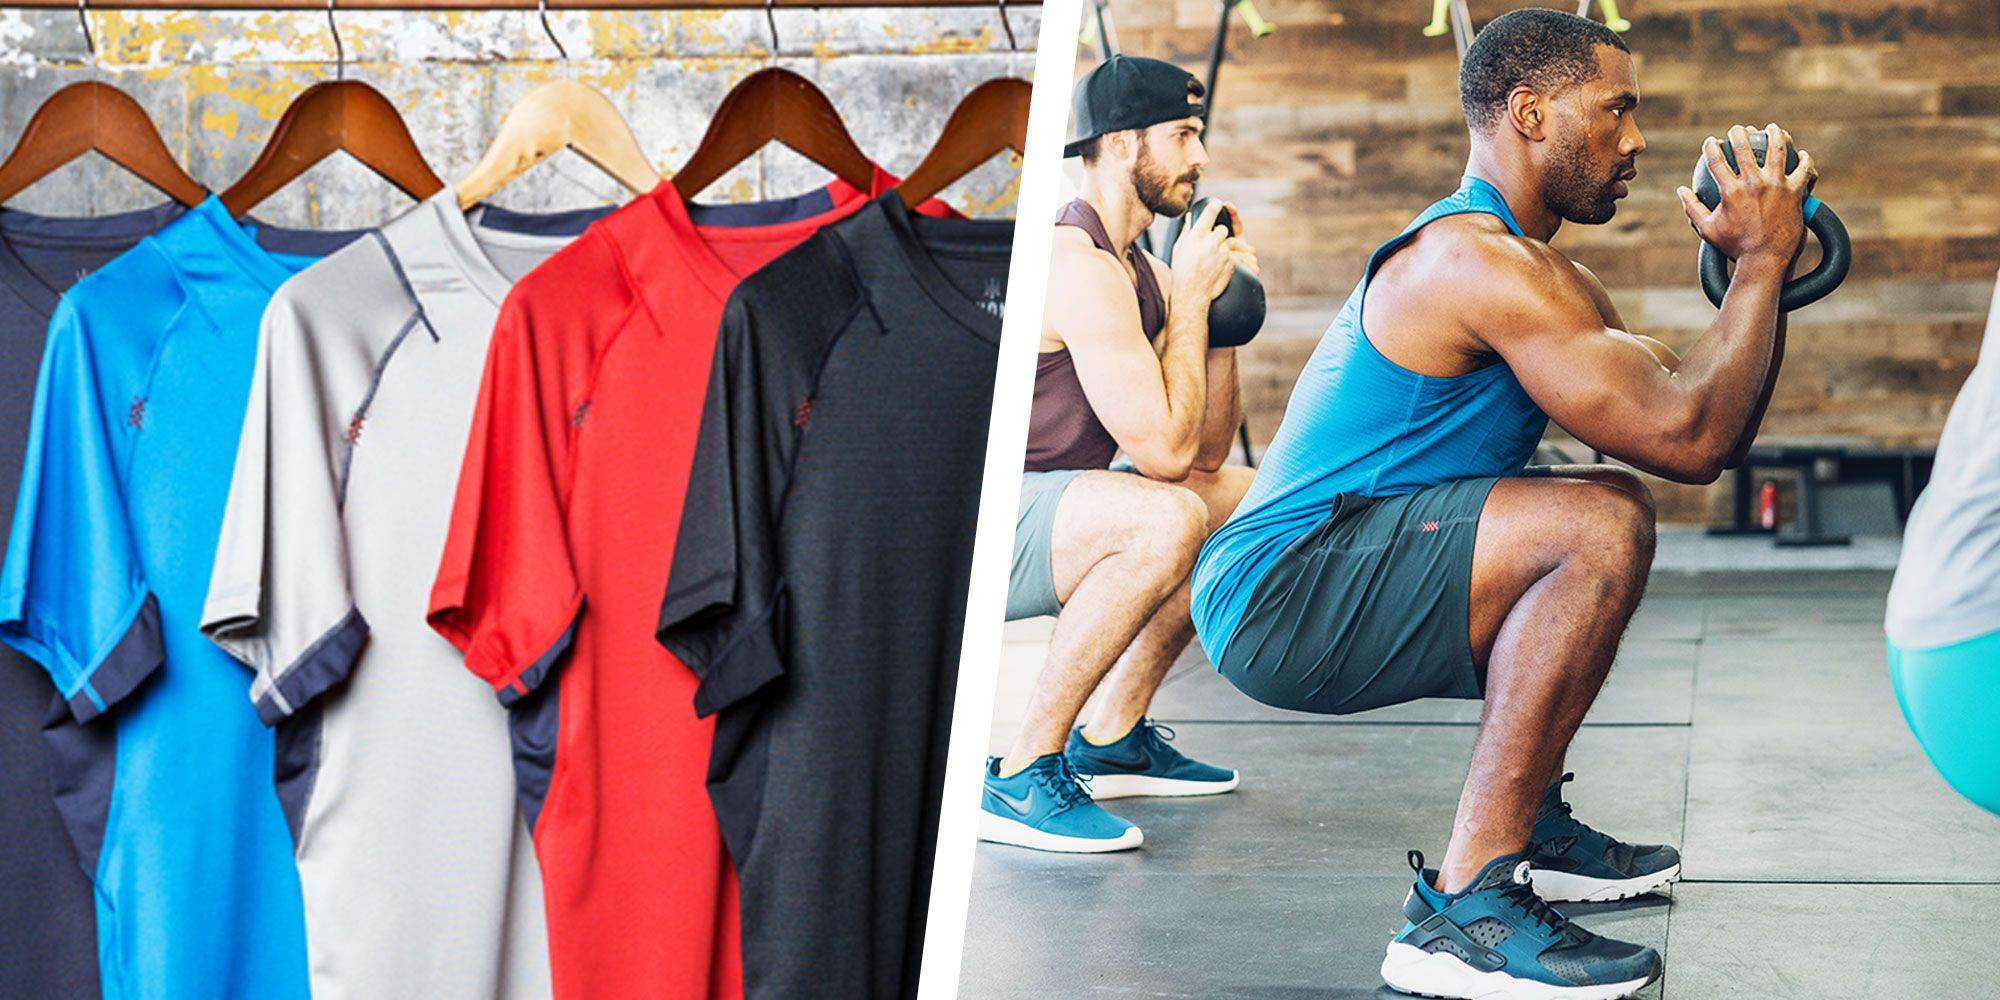 The Best Workout Clothes for Men